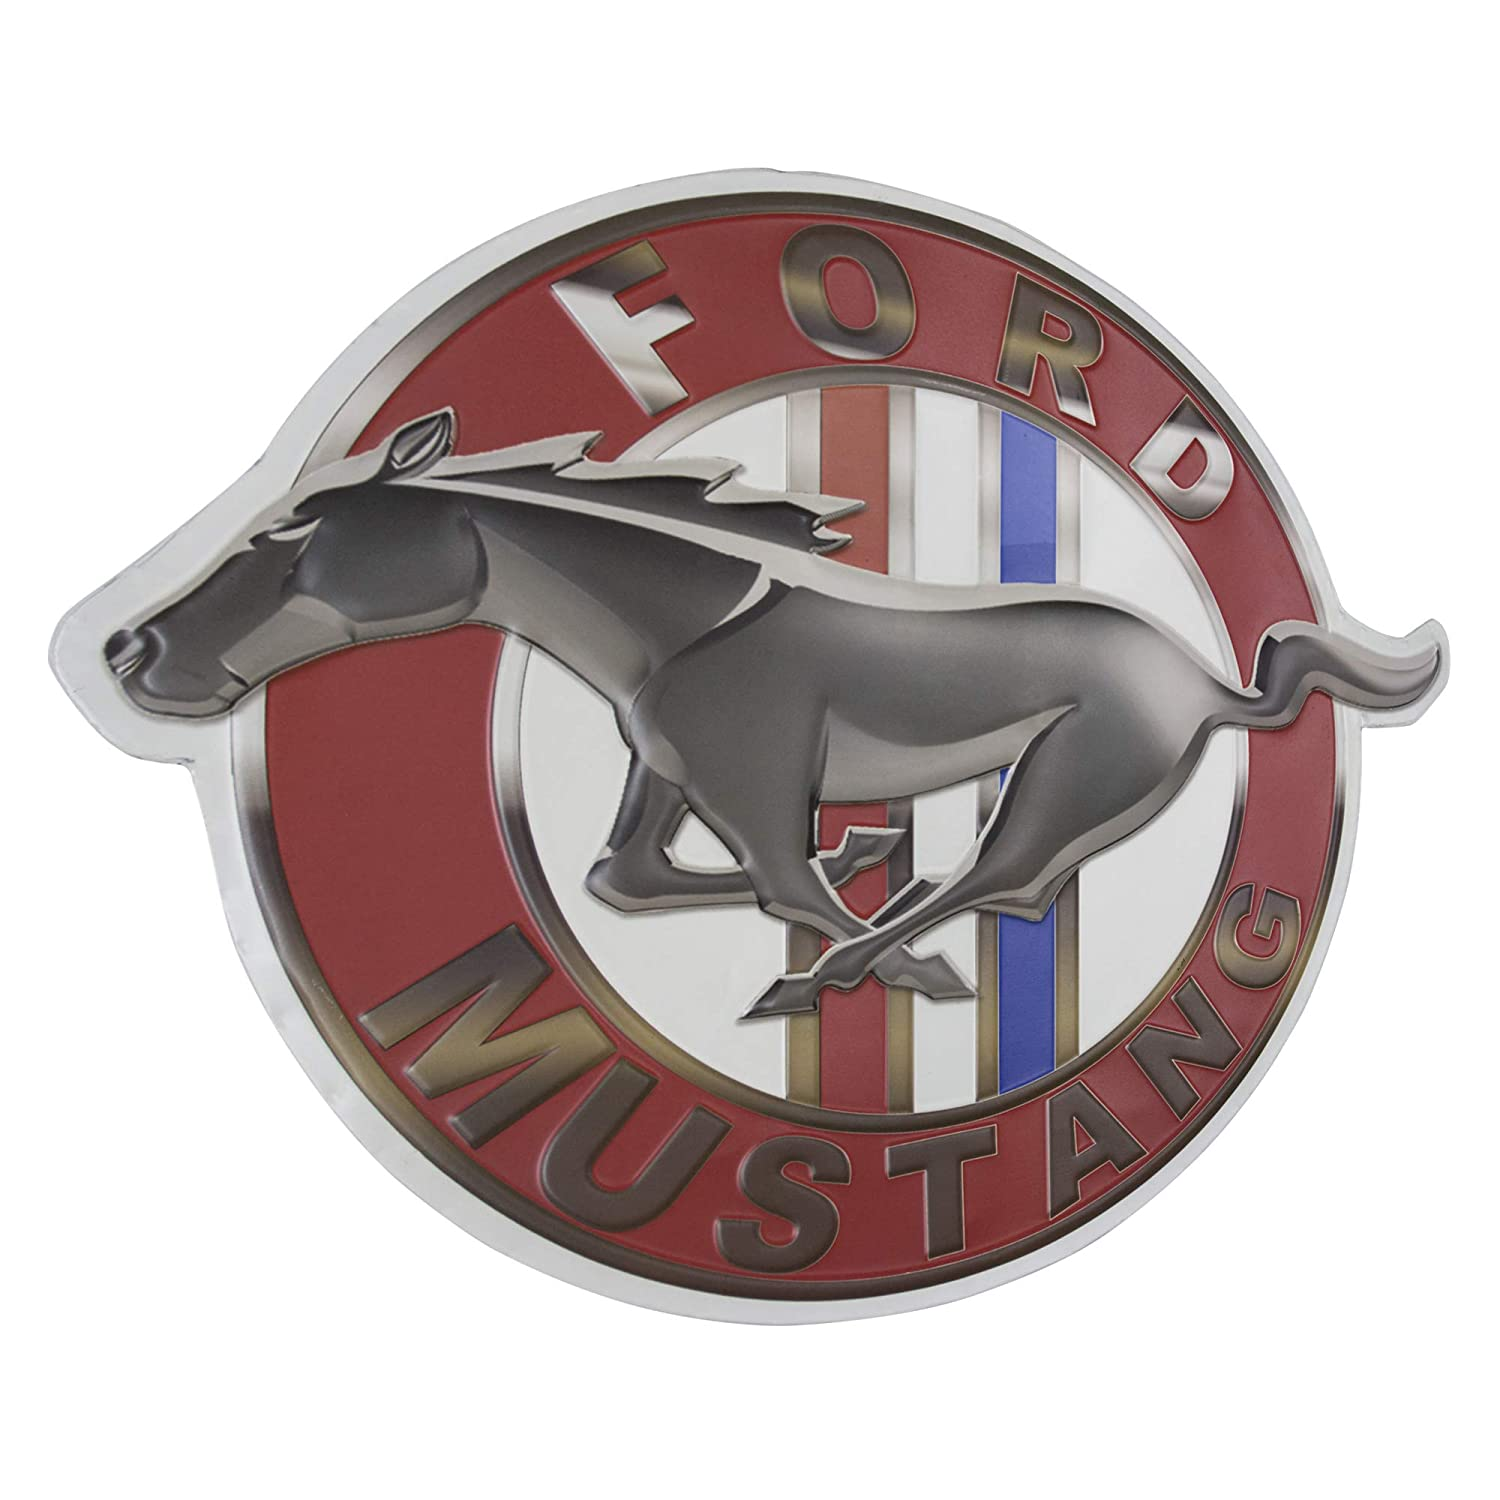 Officially Licensed Vintage Ford Mustang Logo Embossed Metal Wall Decor Sign for Bar, Garage or Man Cave